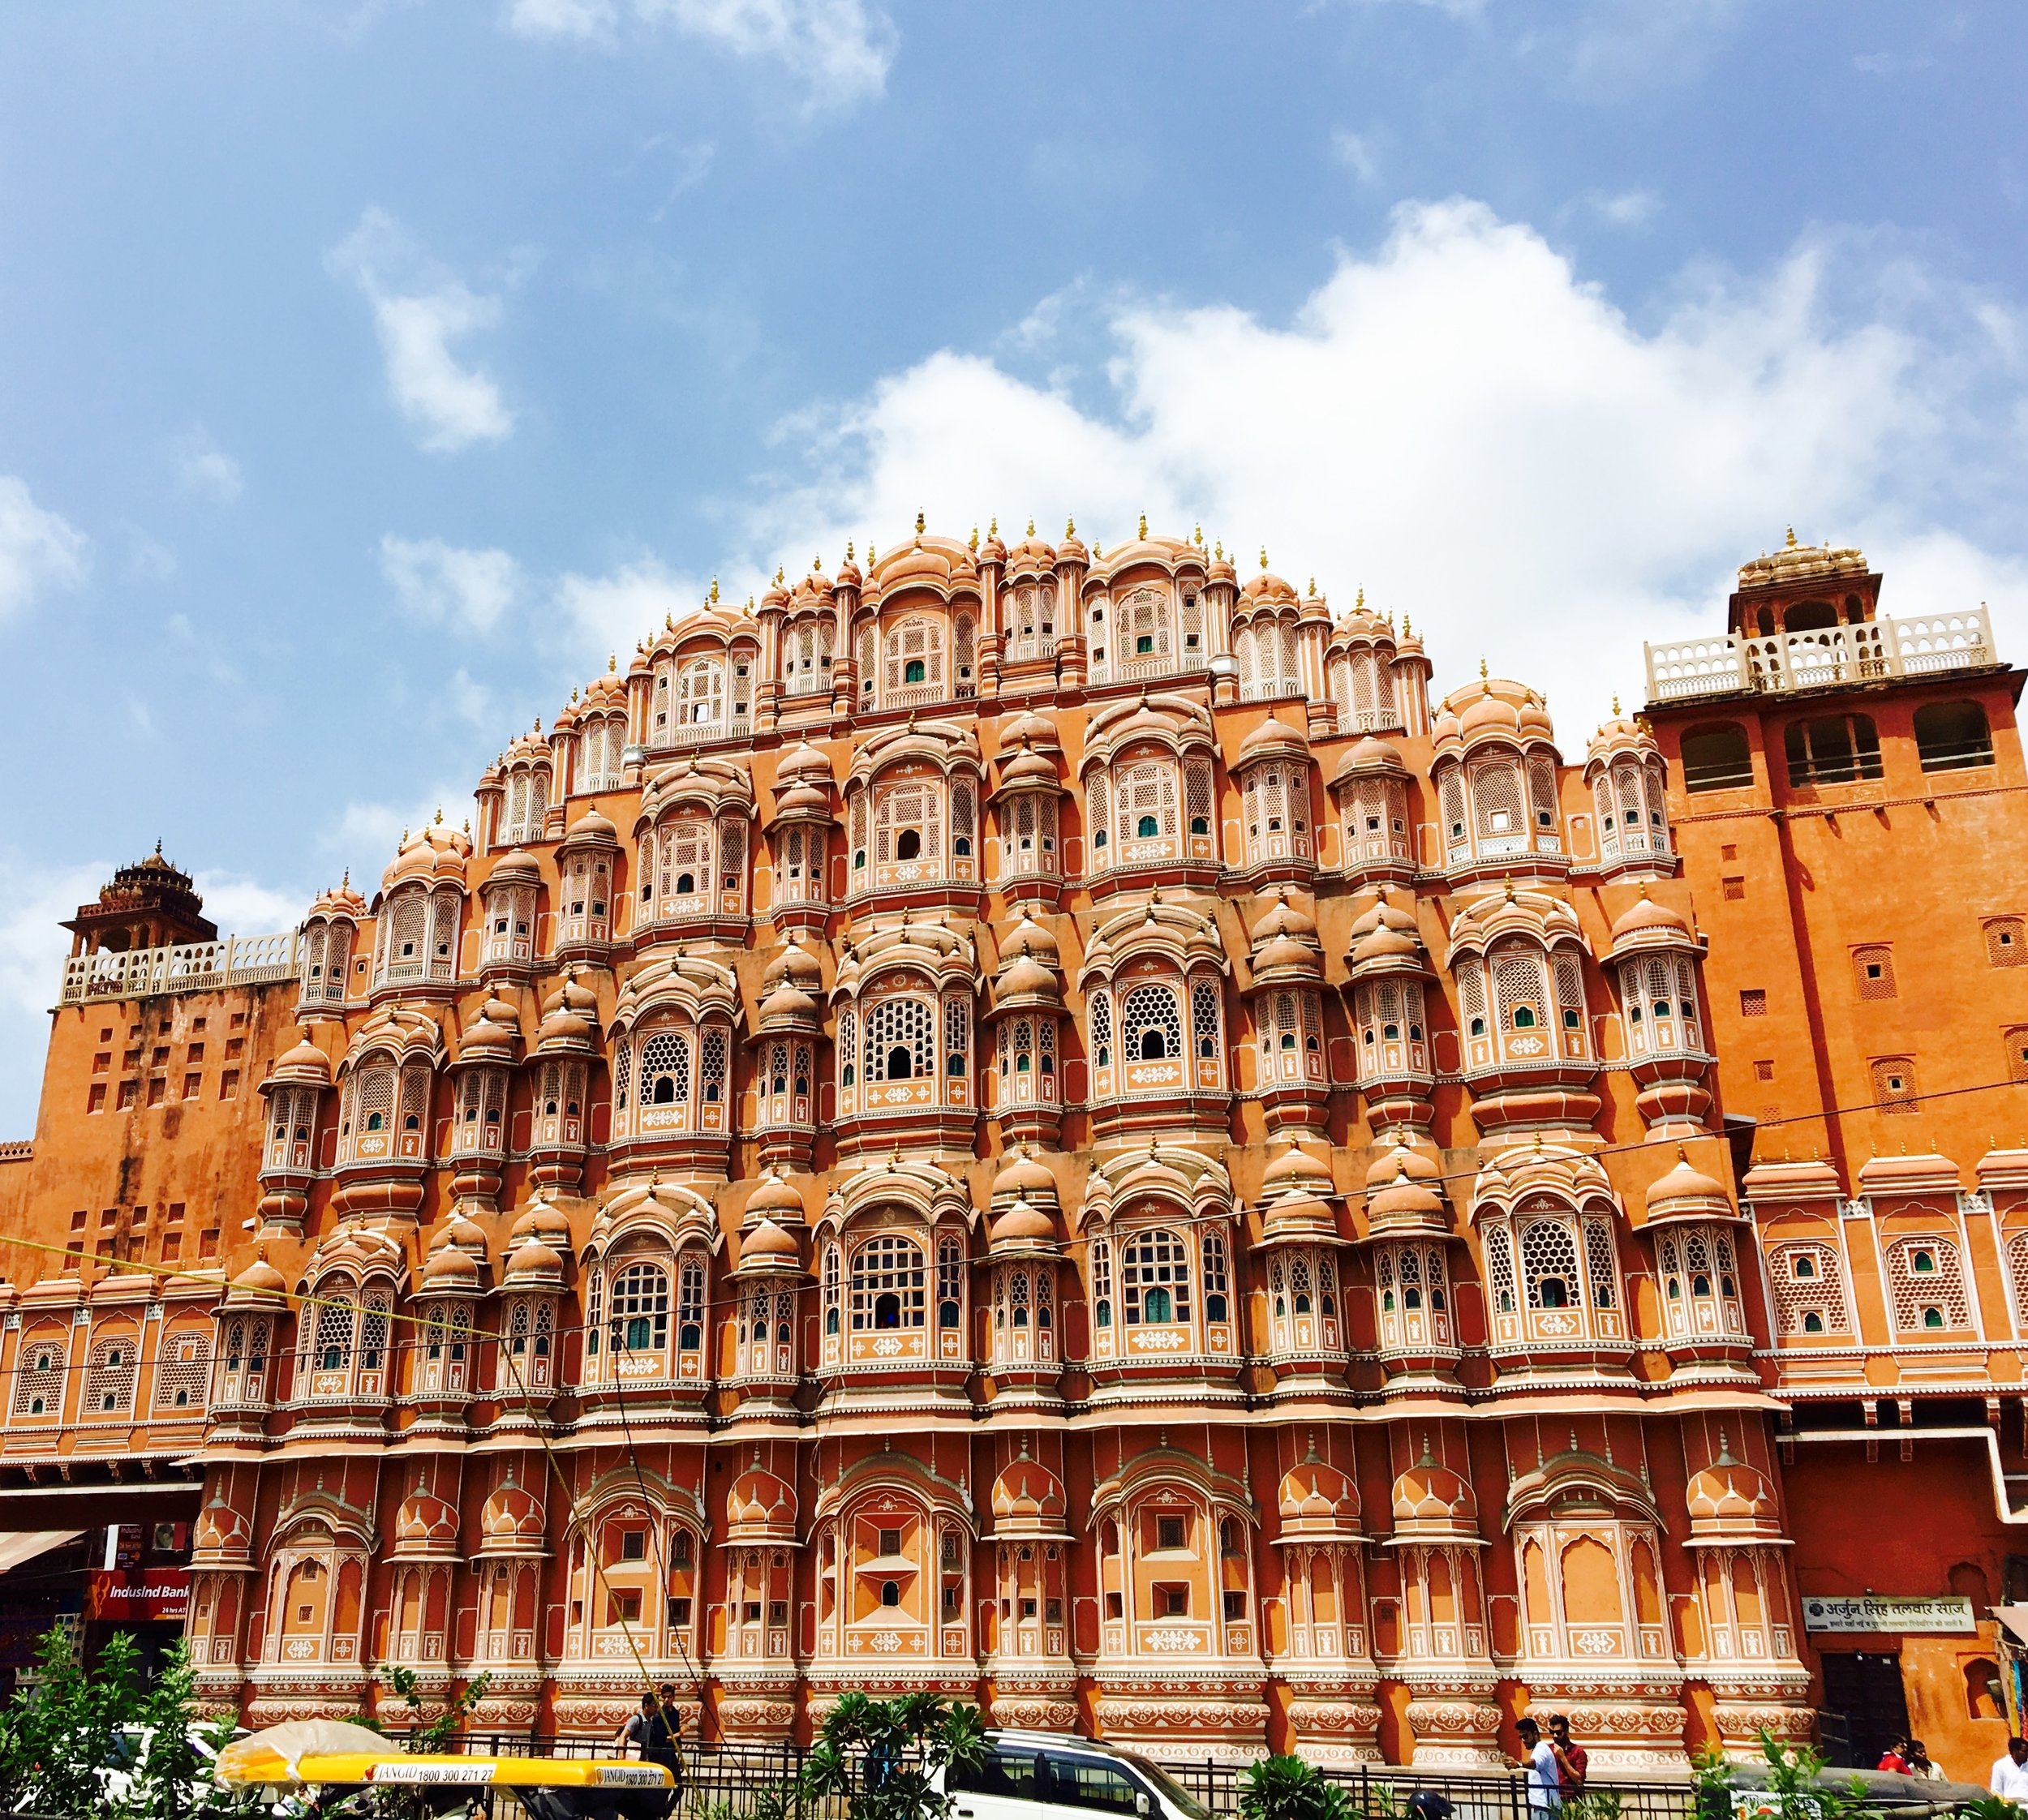 The Hawa Mahal (Air Palace)in the center of the Old City of Jaipur has a beautiful facade. Originally, named as such for the intricate criss crossing of windows that enahanced cross ventilation, most of the windows are now sealed. Yet, the face is still an arresting beauty!